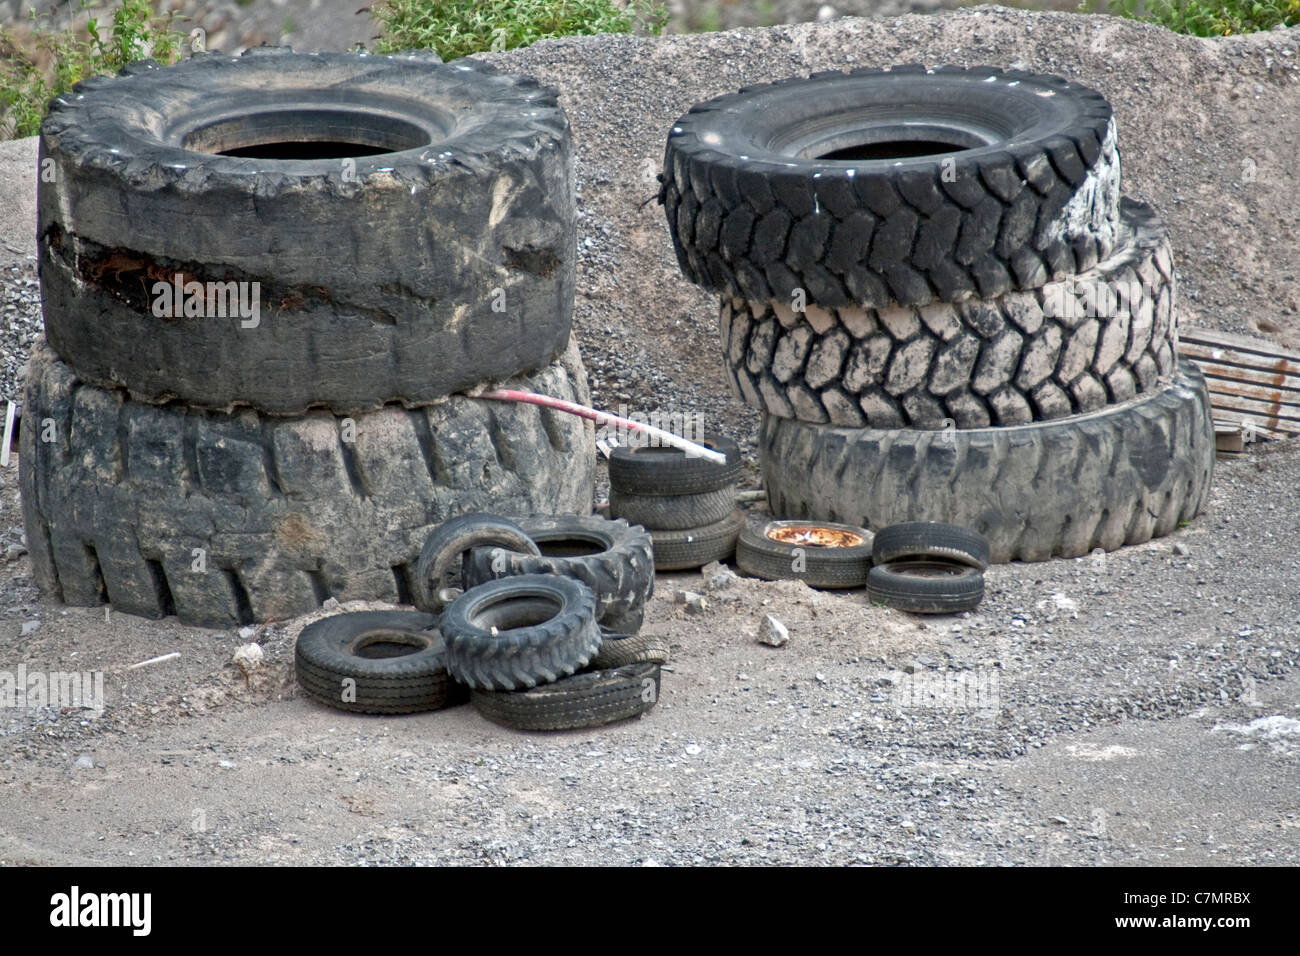 Dumped worn out tyres from various vehicles in a quarry - Stock Image